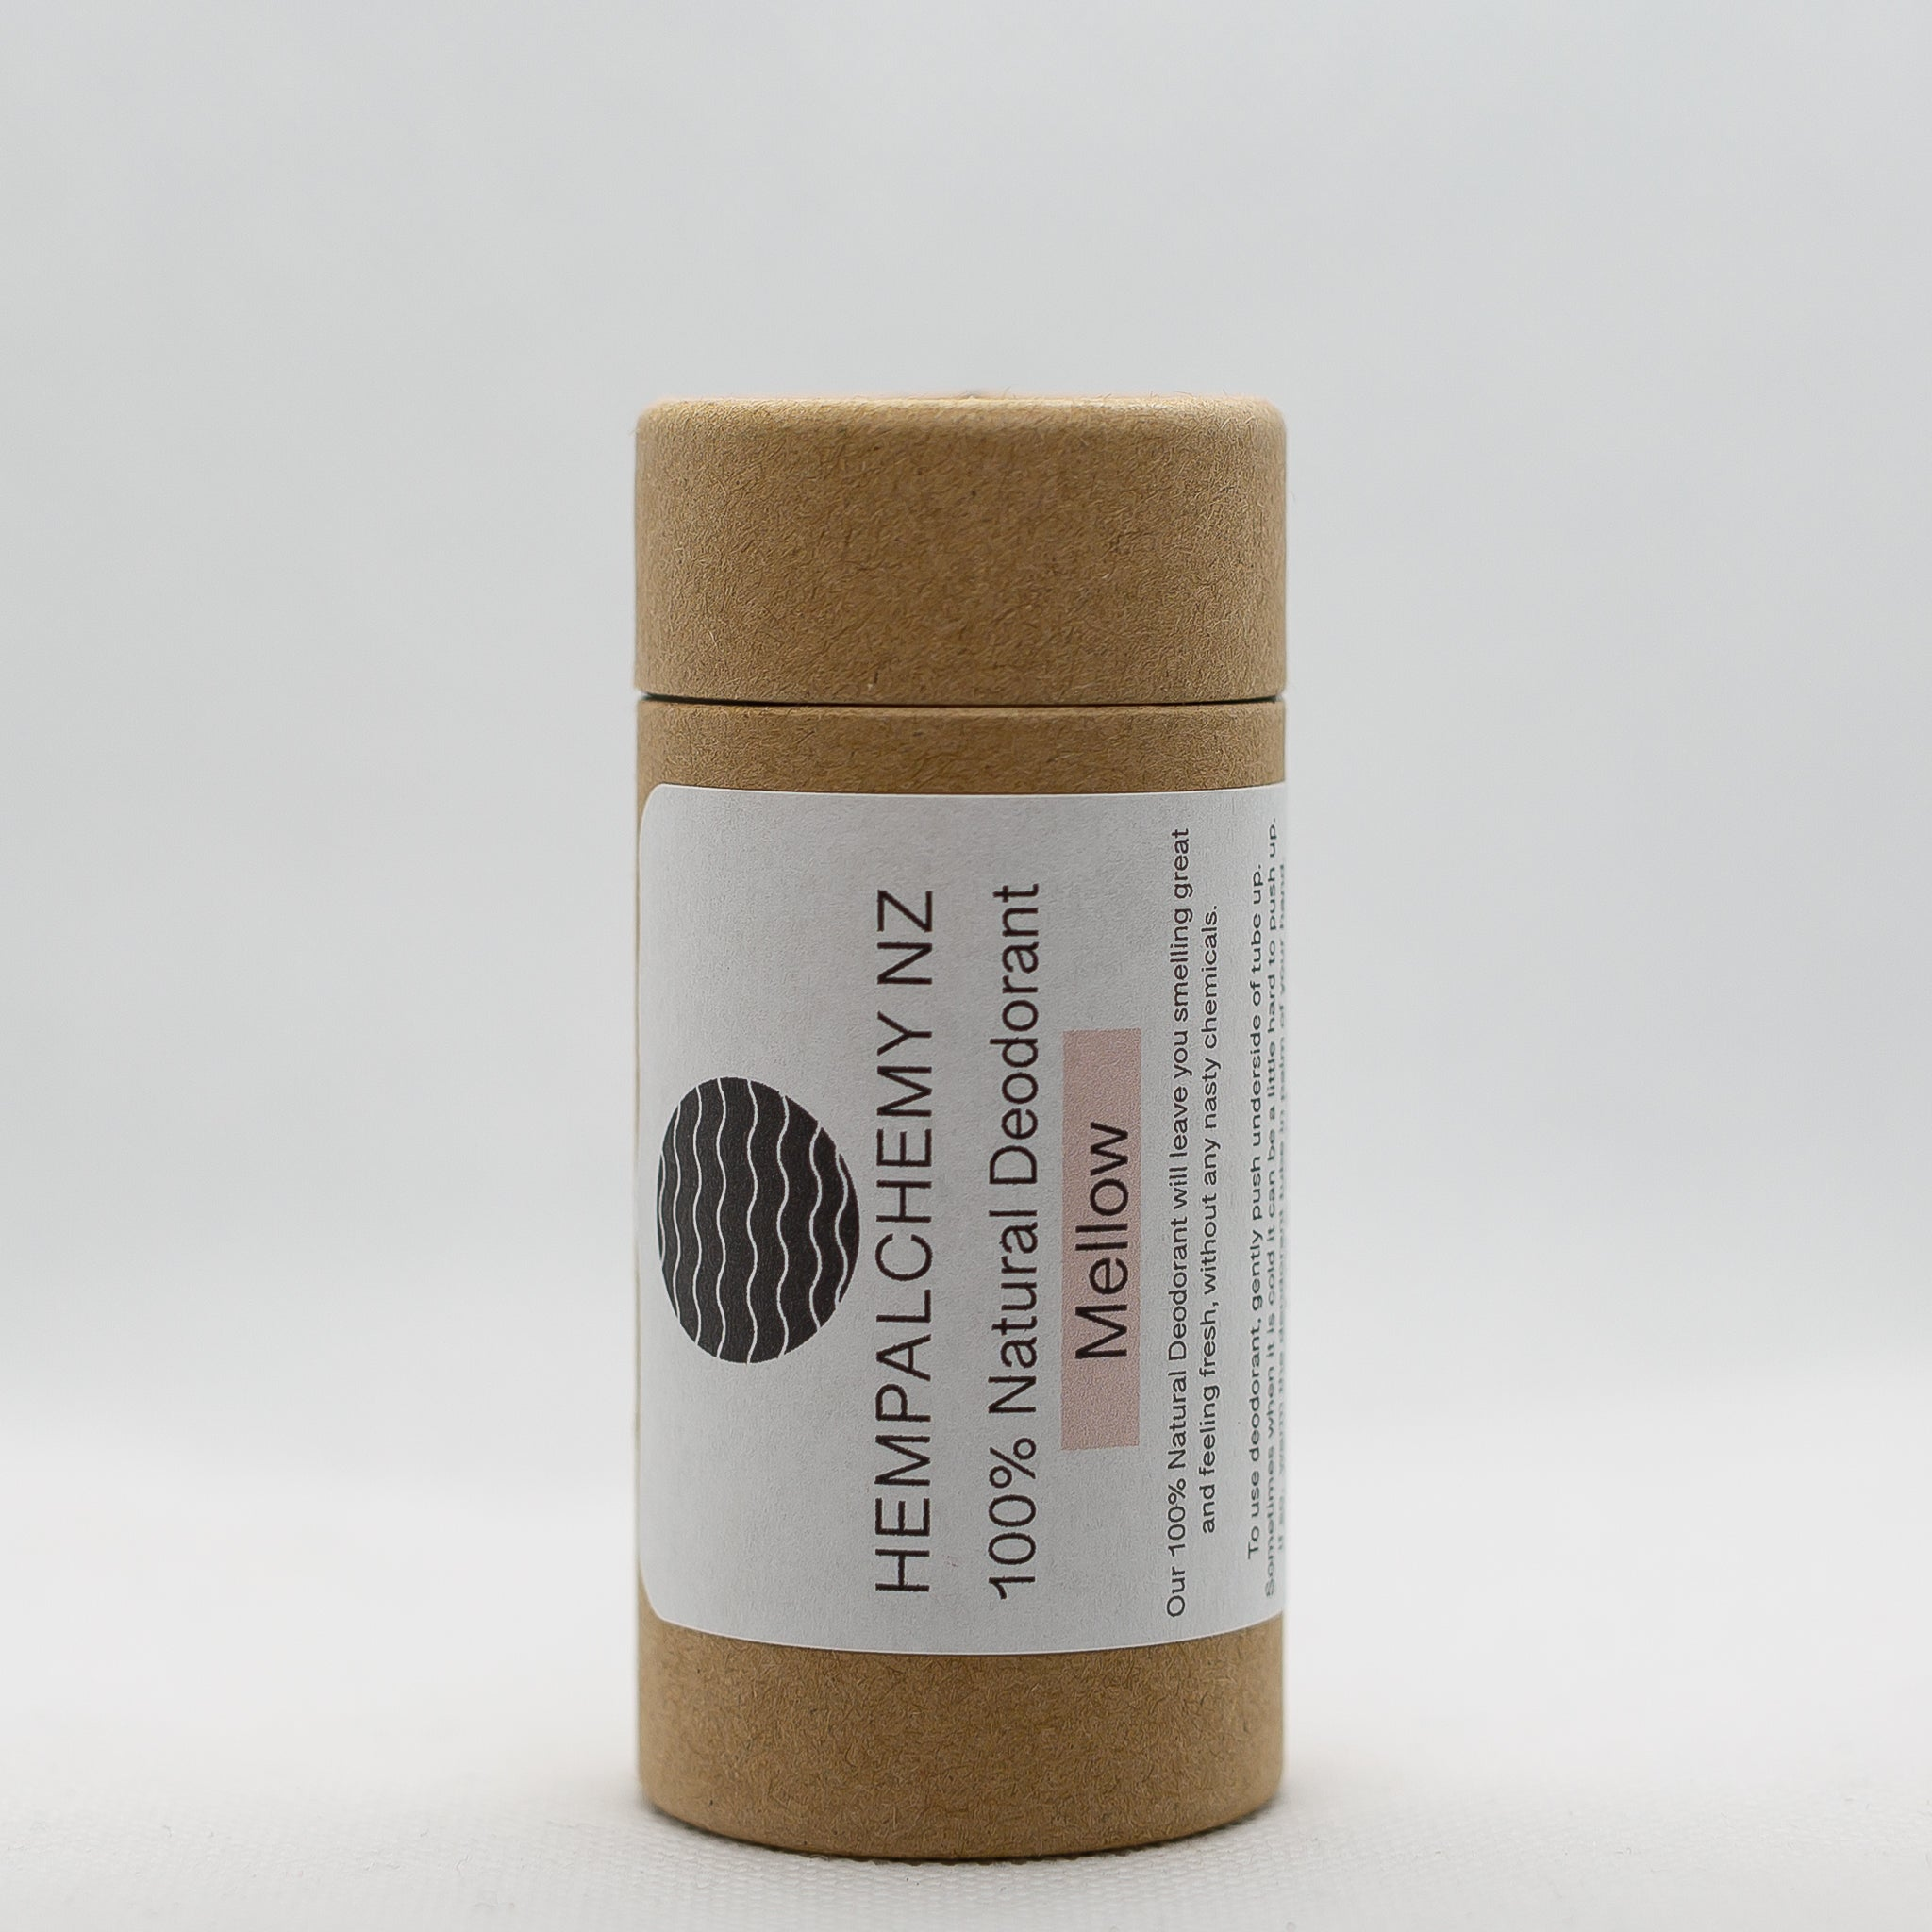 100% Natural Deodorant stick - Mellow 70 grams